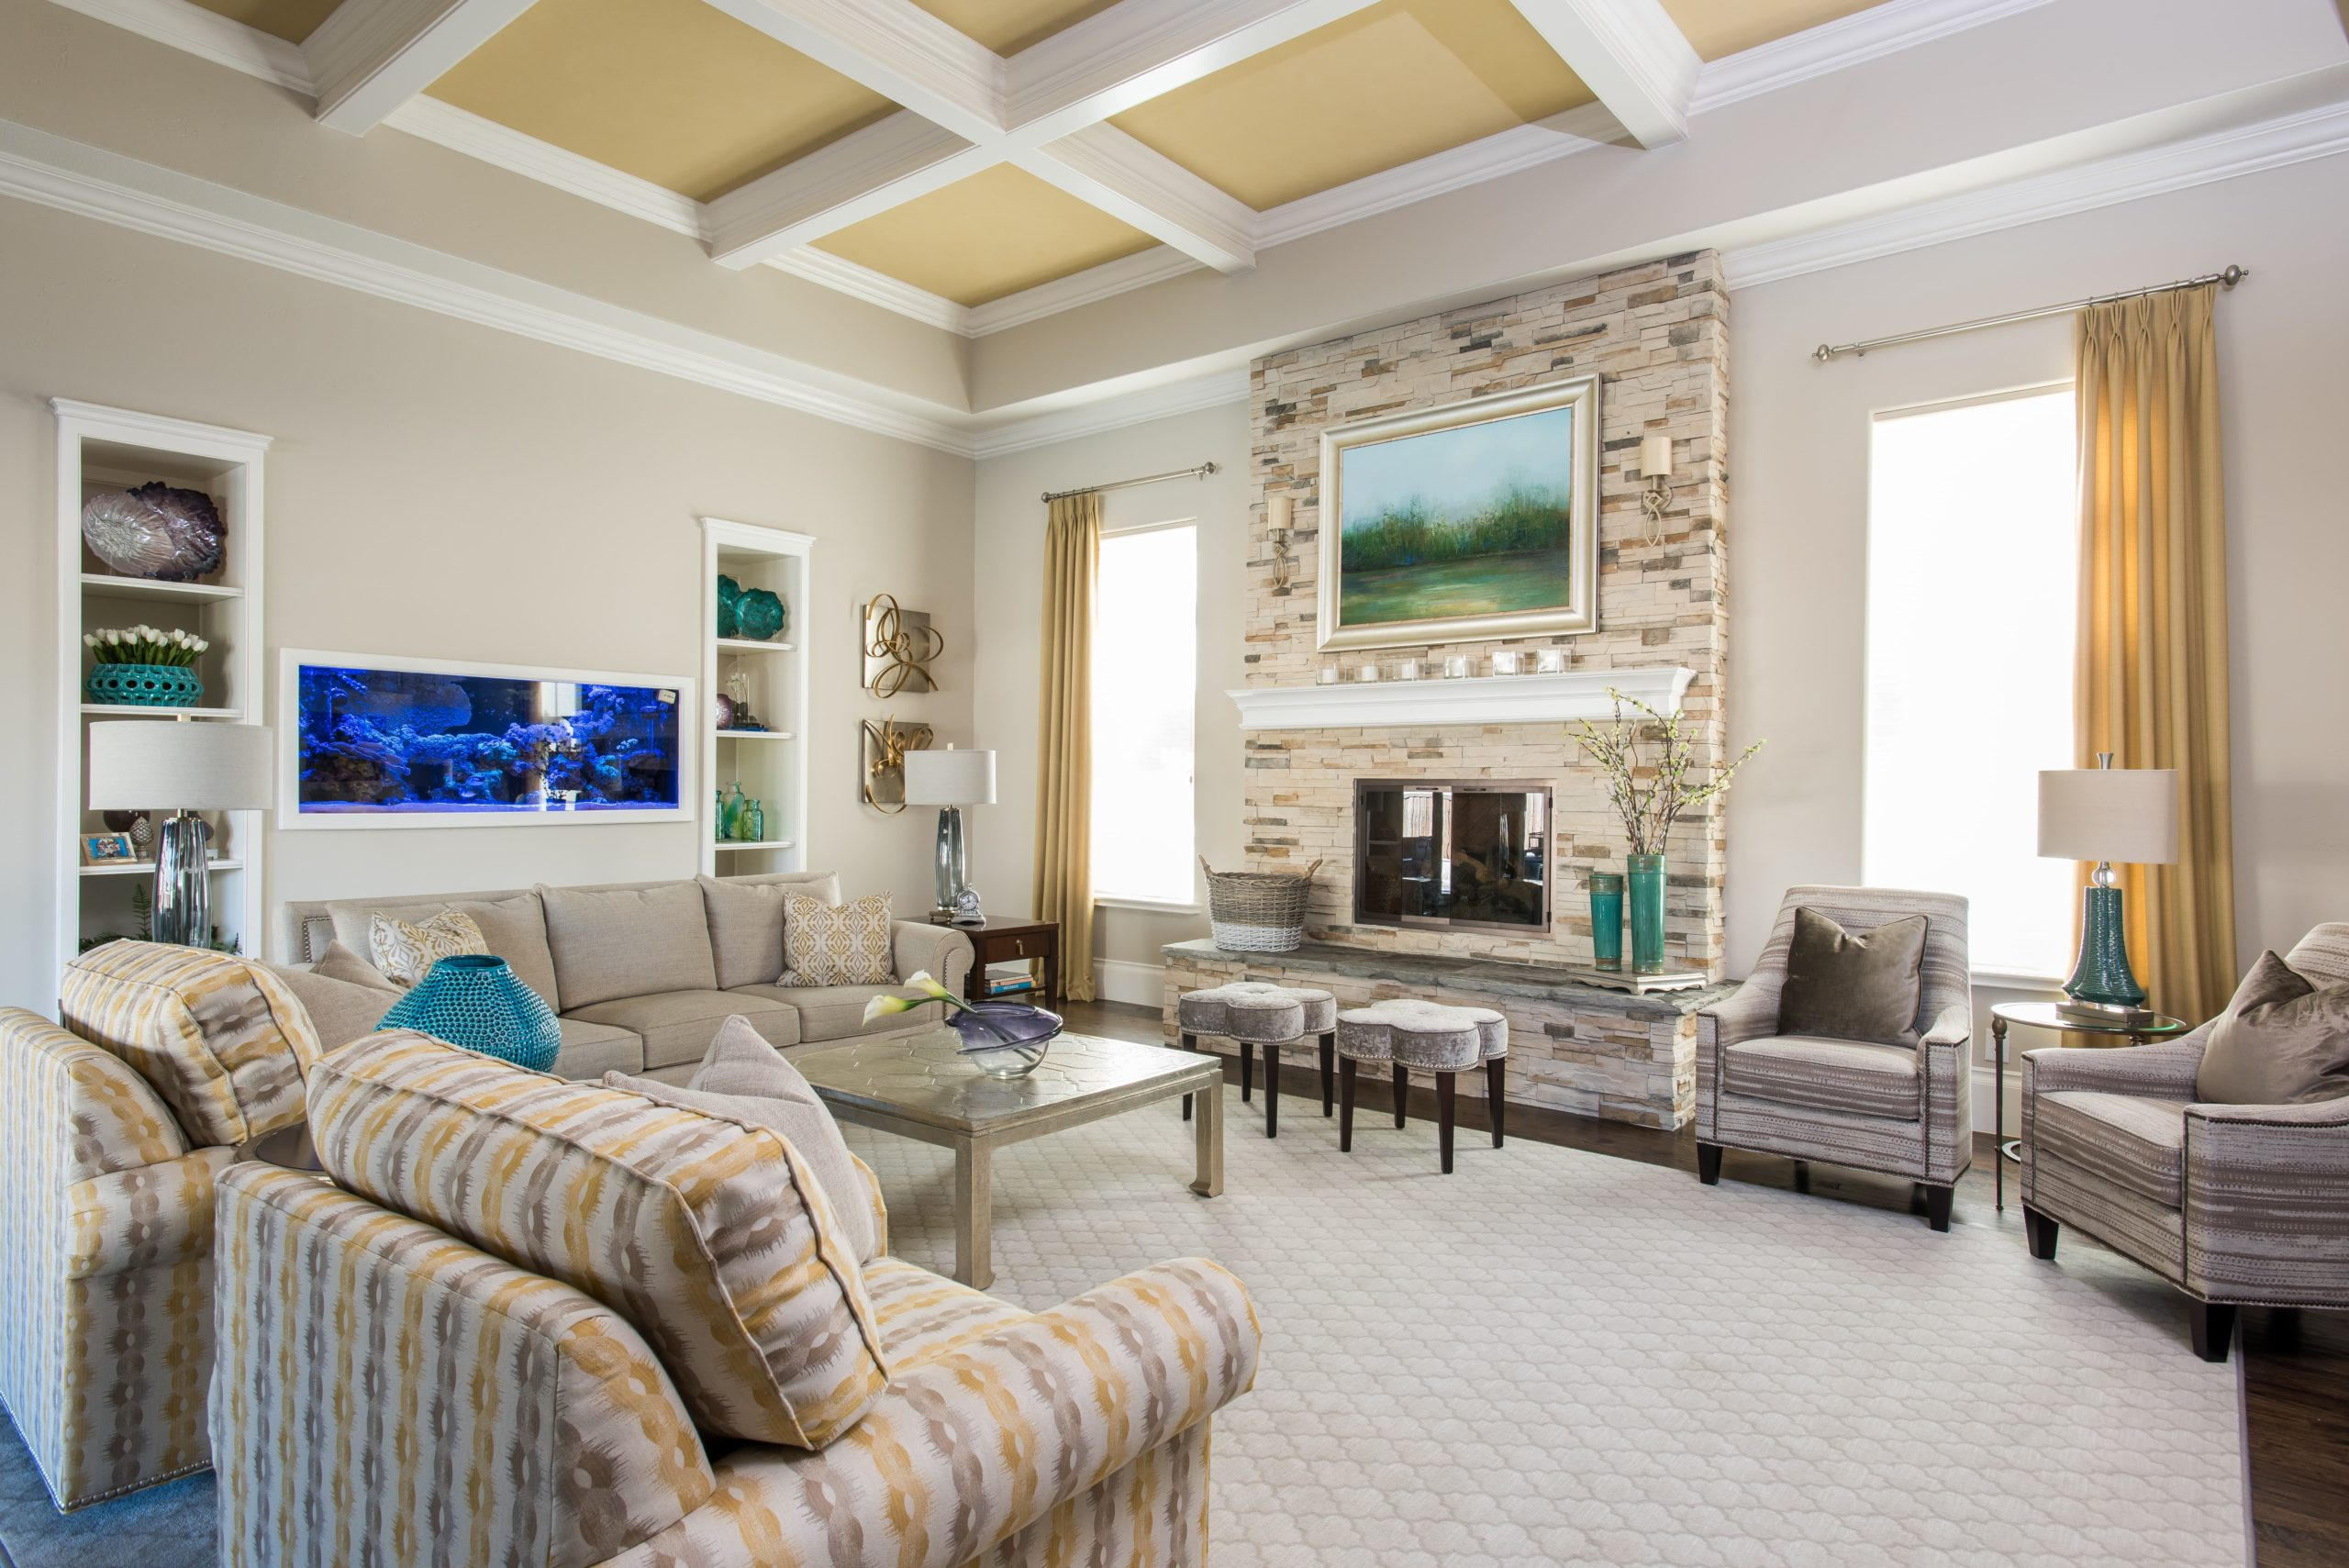 Natural Hues & Blues 5 - Dallas Interior Designer serving Plano, Frisco, Dallas, Allen for Decorating Den Interiors D'KOR HOME by Dee Frazier Interiors